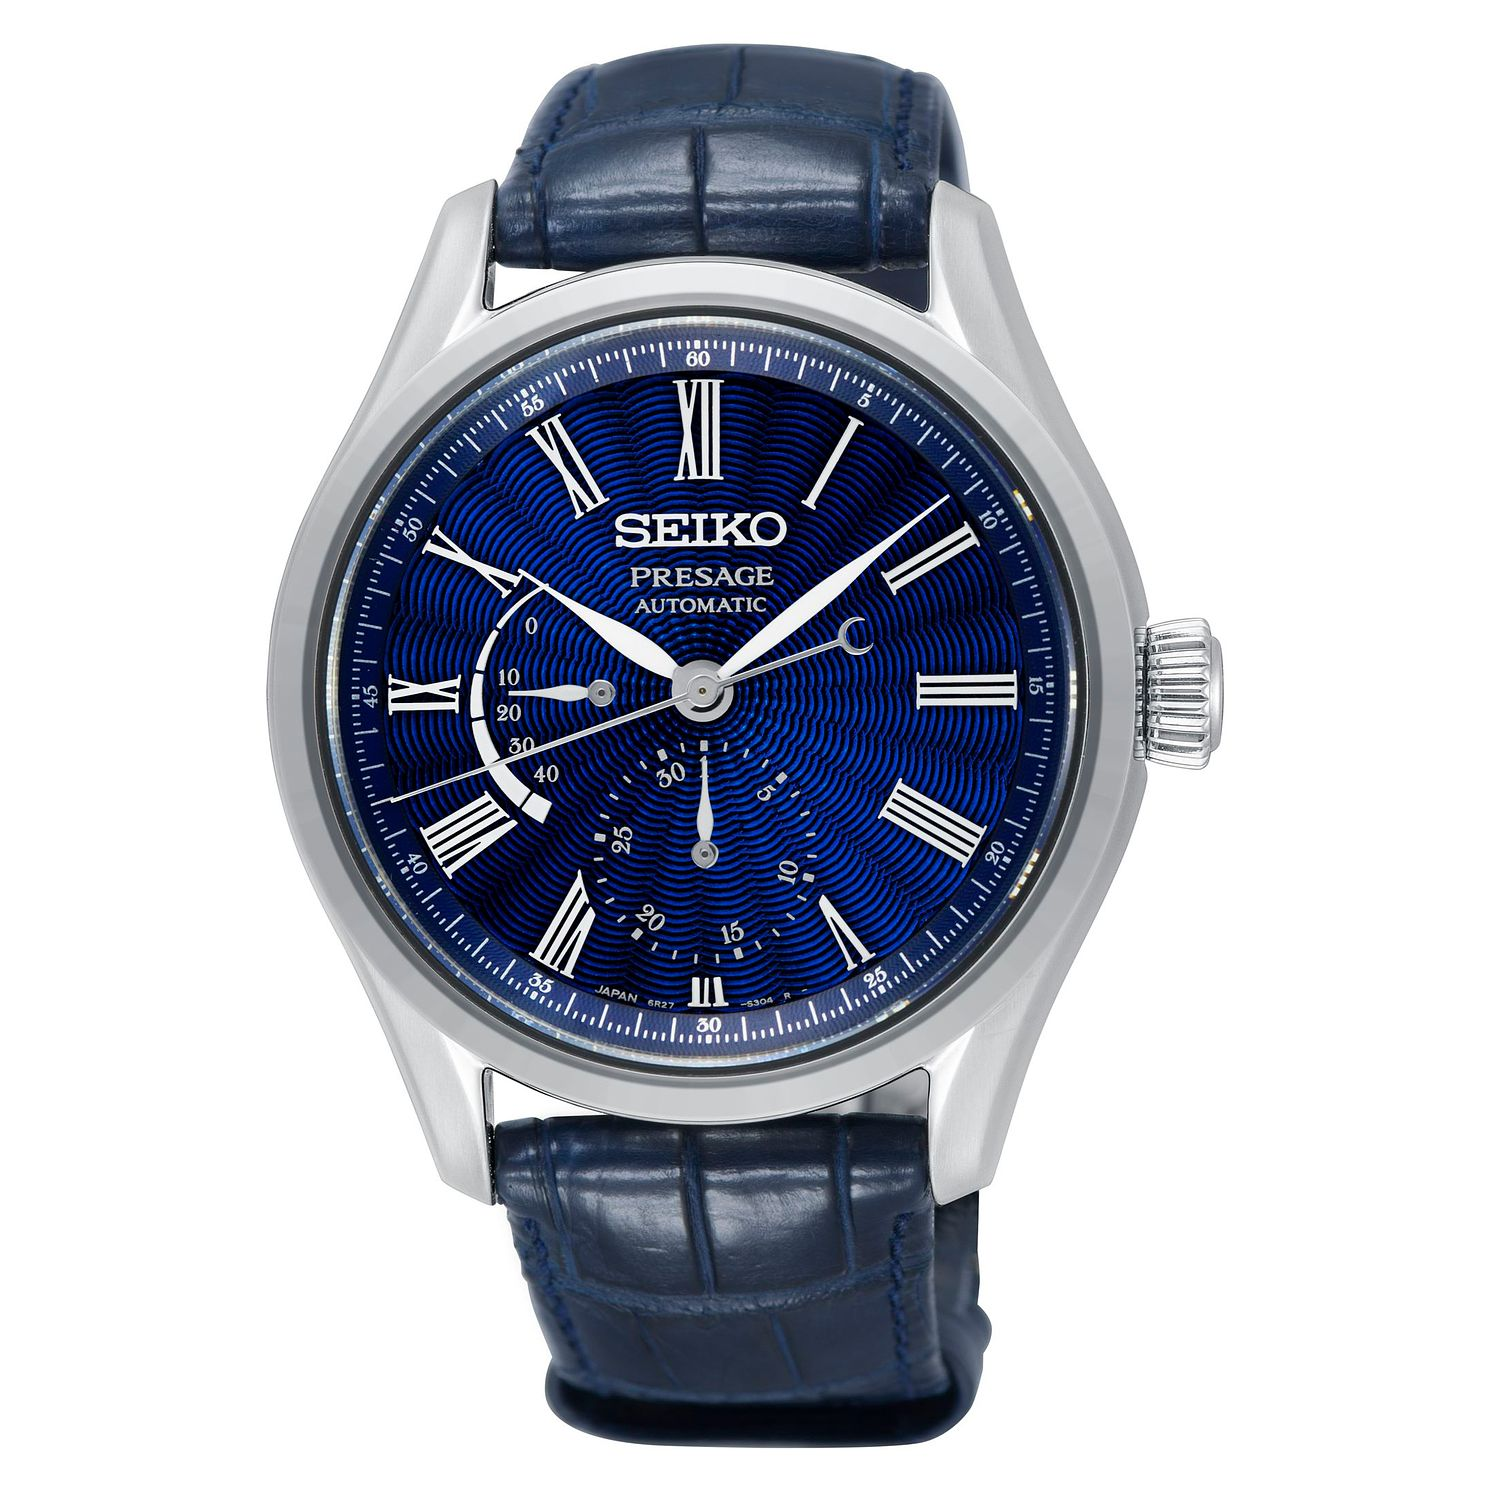 Seiko Presage Men's Blue Leather Strap Watch - Product number 2346664